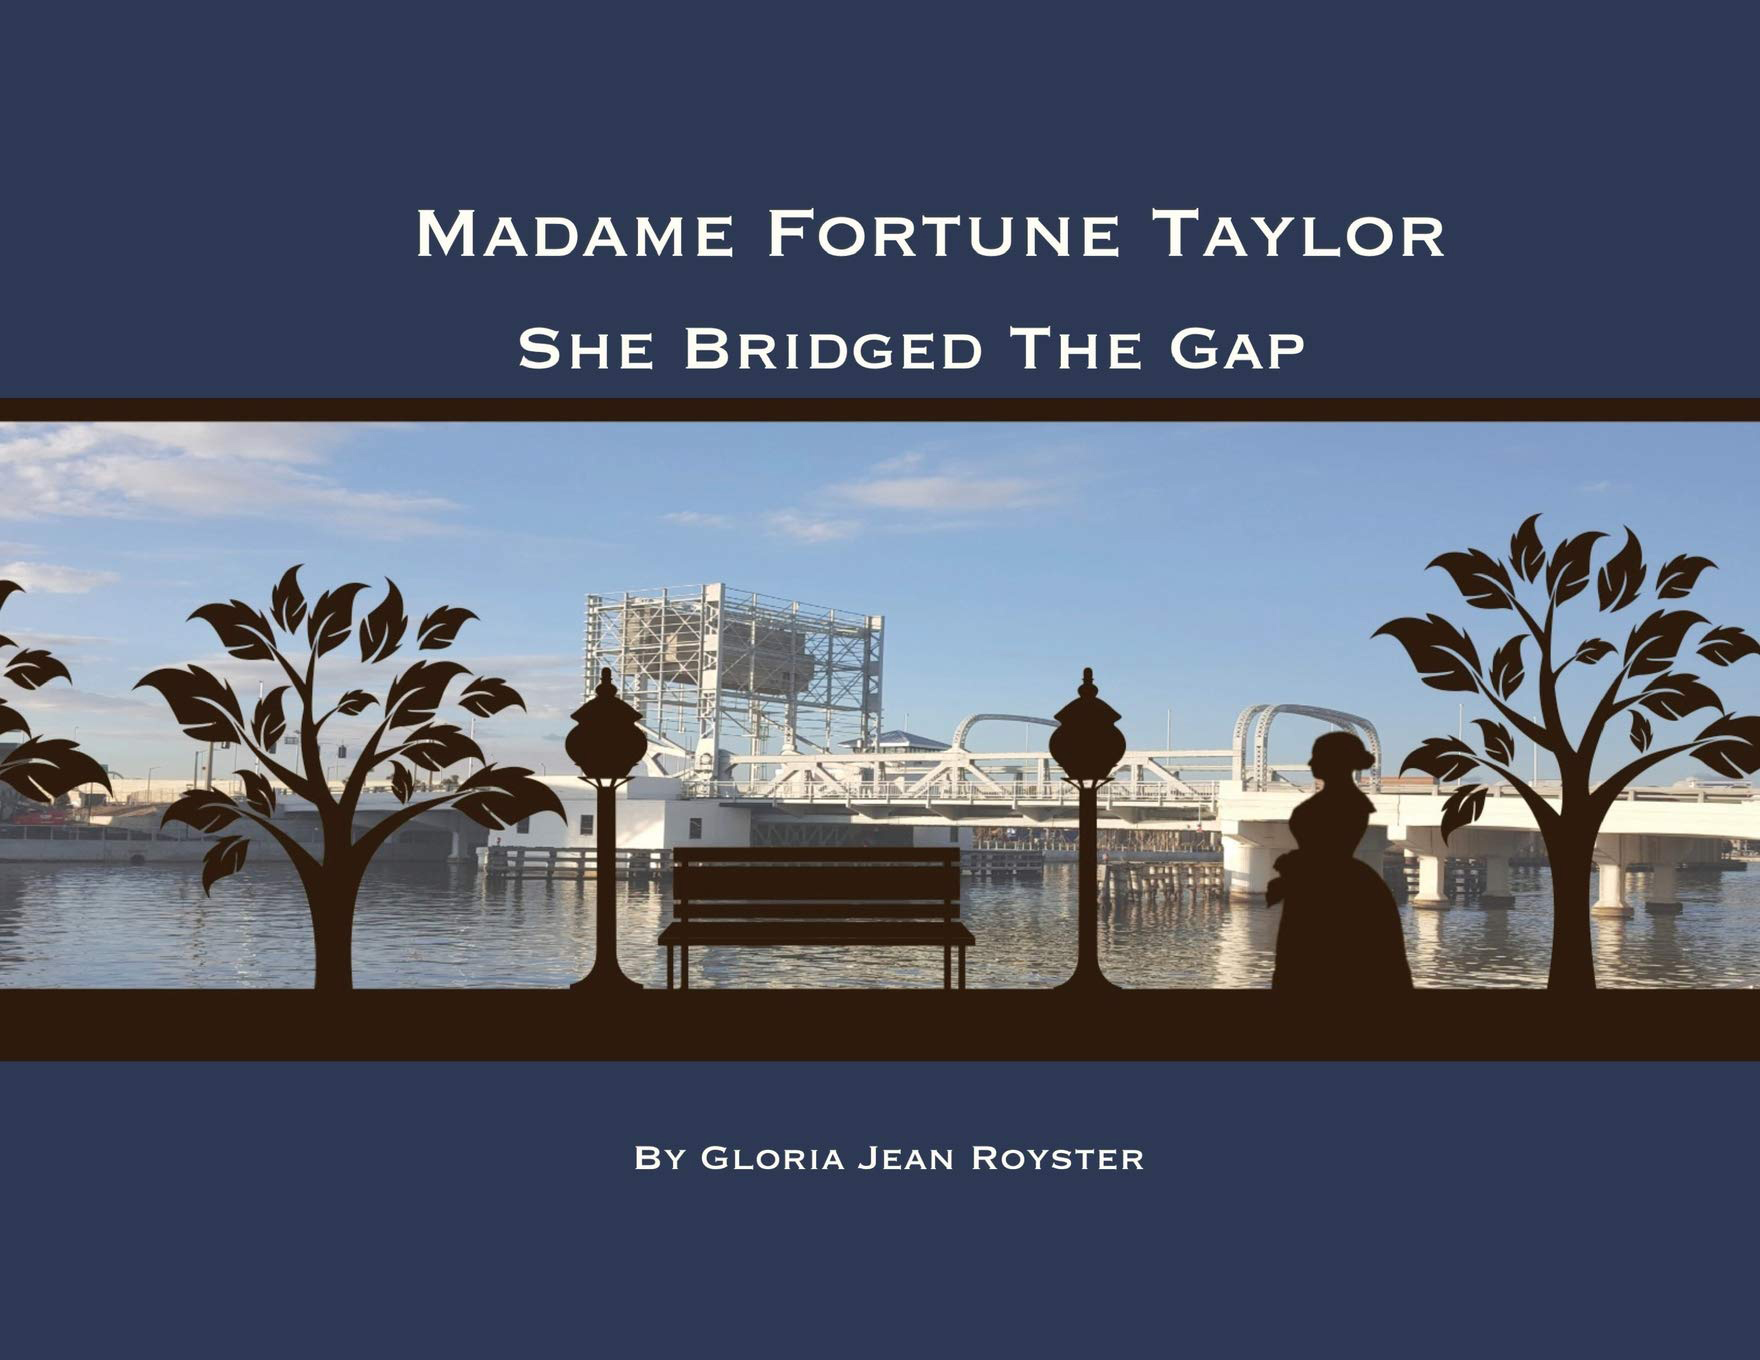 Madame Fortune Taylor - She Bridged the Gap